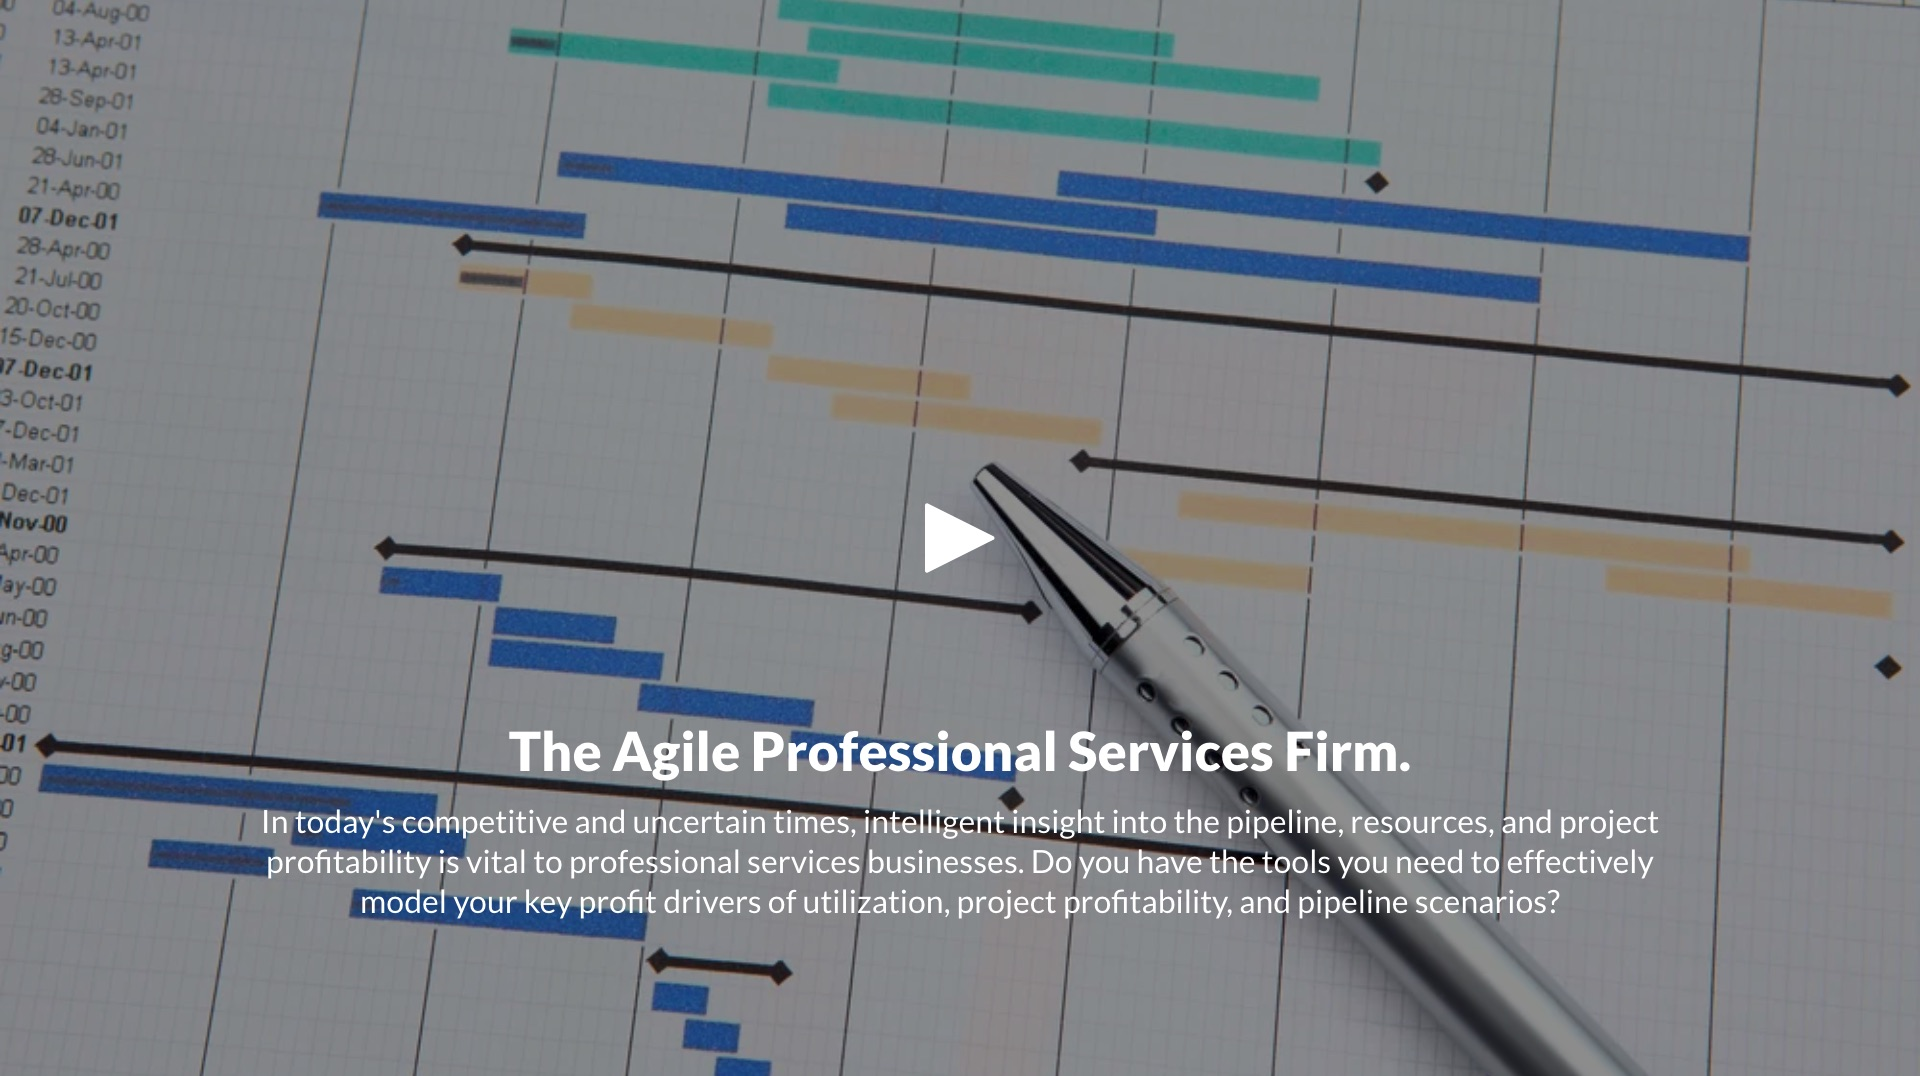 The Agile Professional Services Firm Webcast